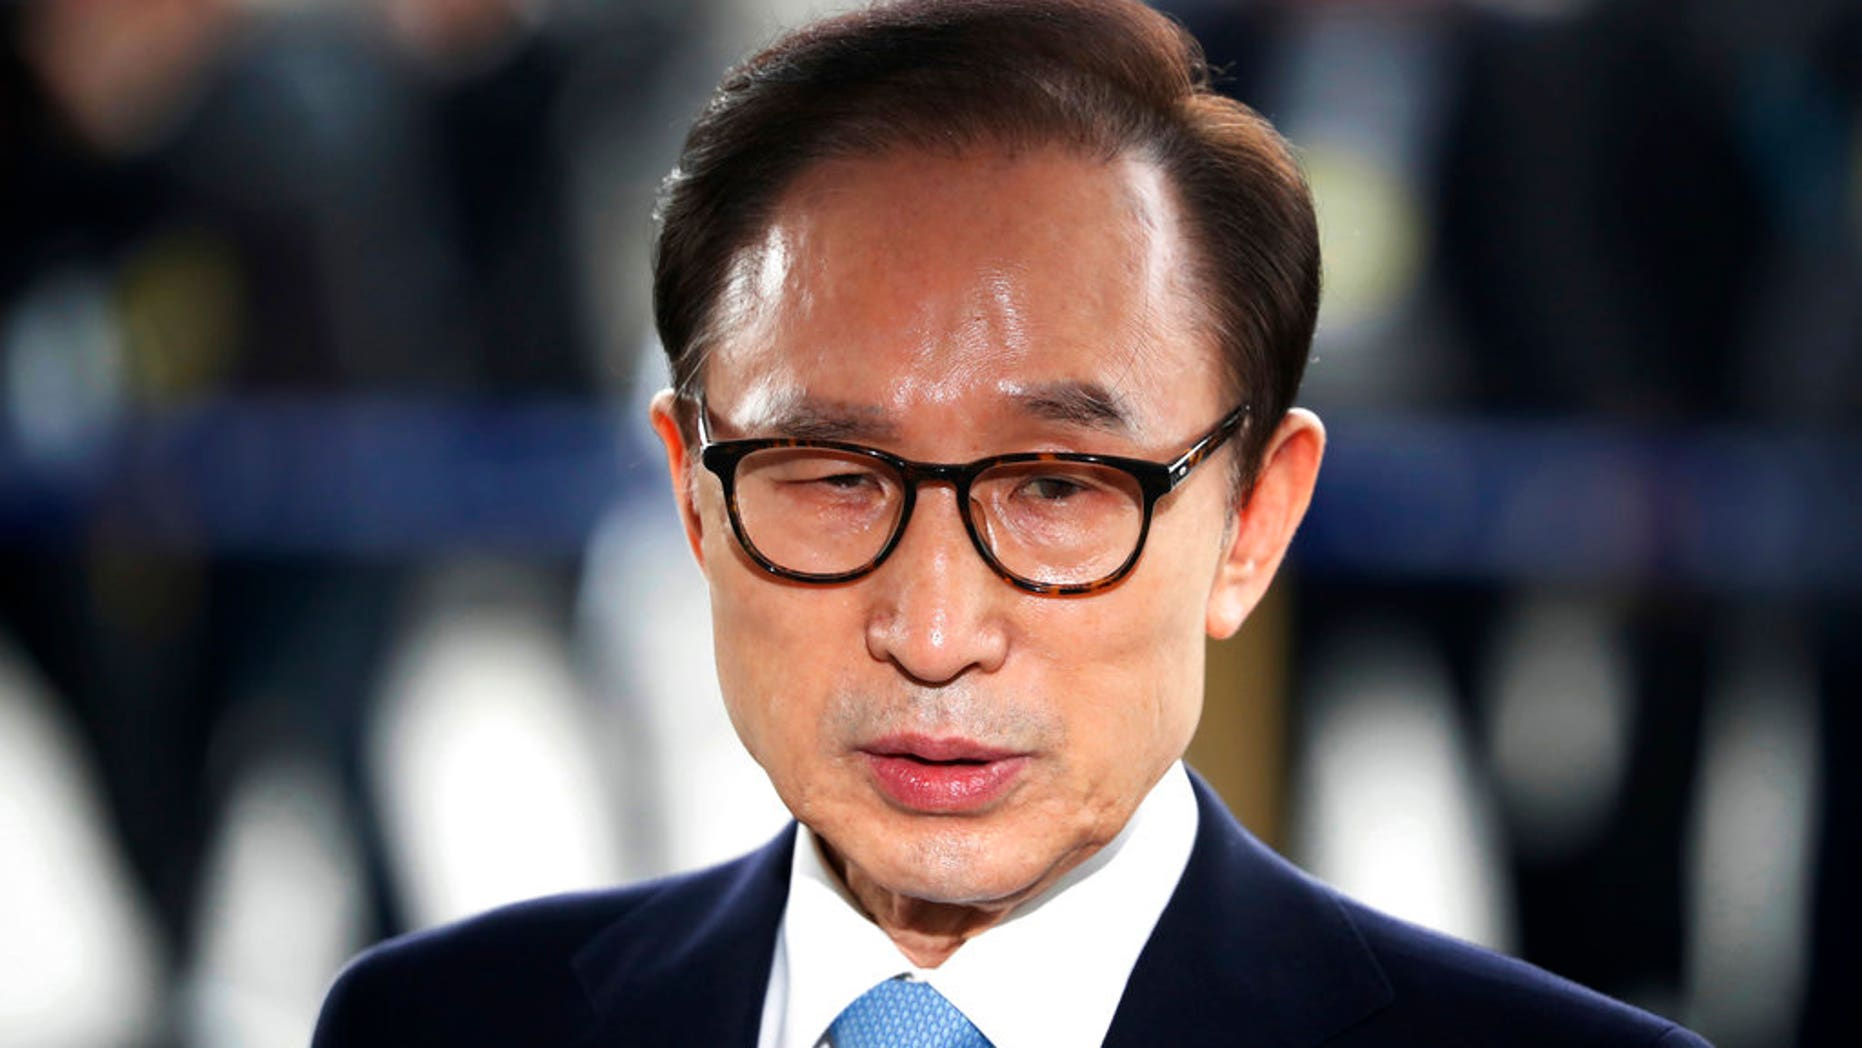 Ex-South Korean president convicted on corruption charges